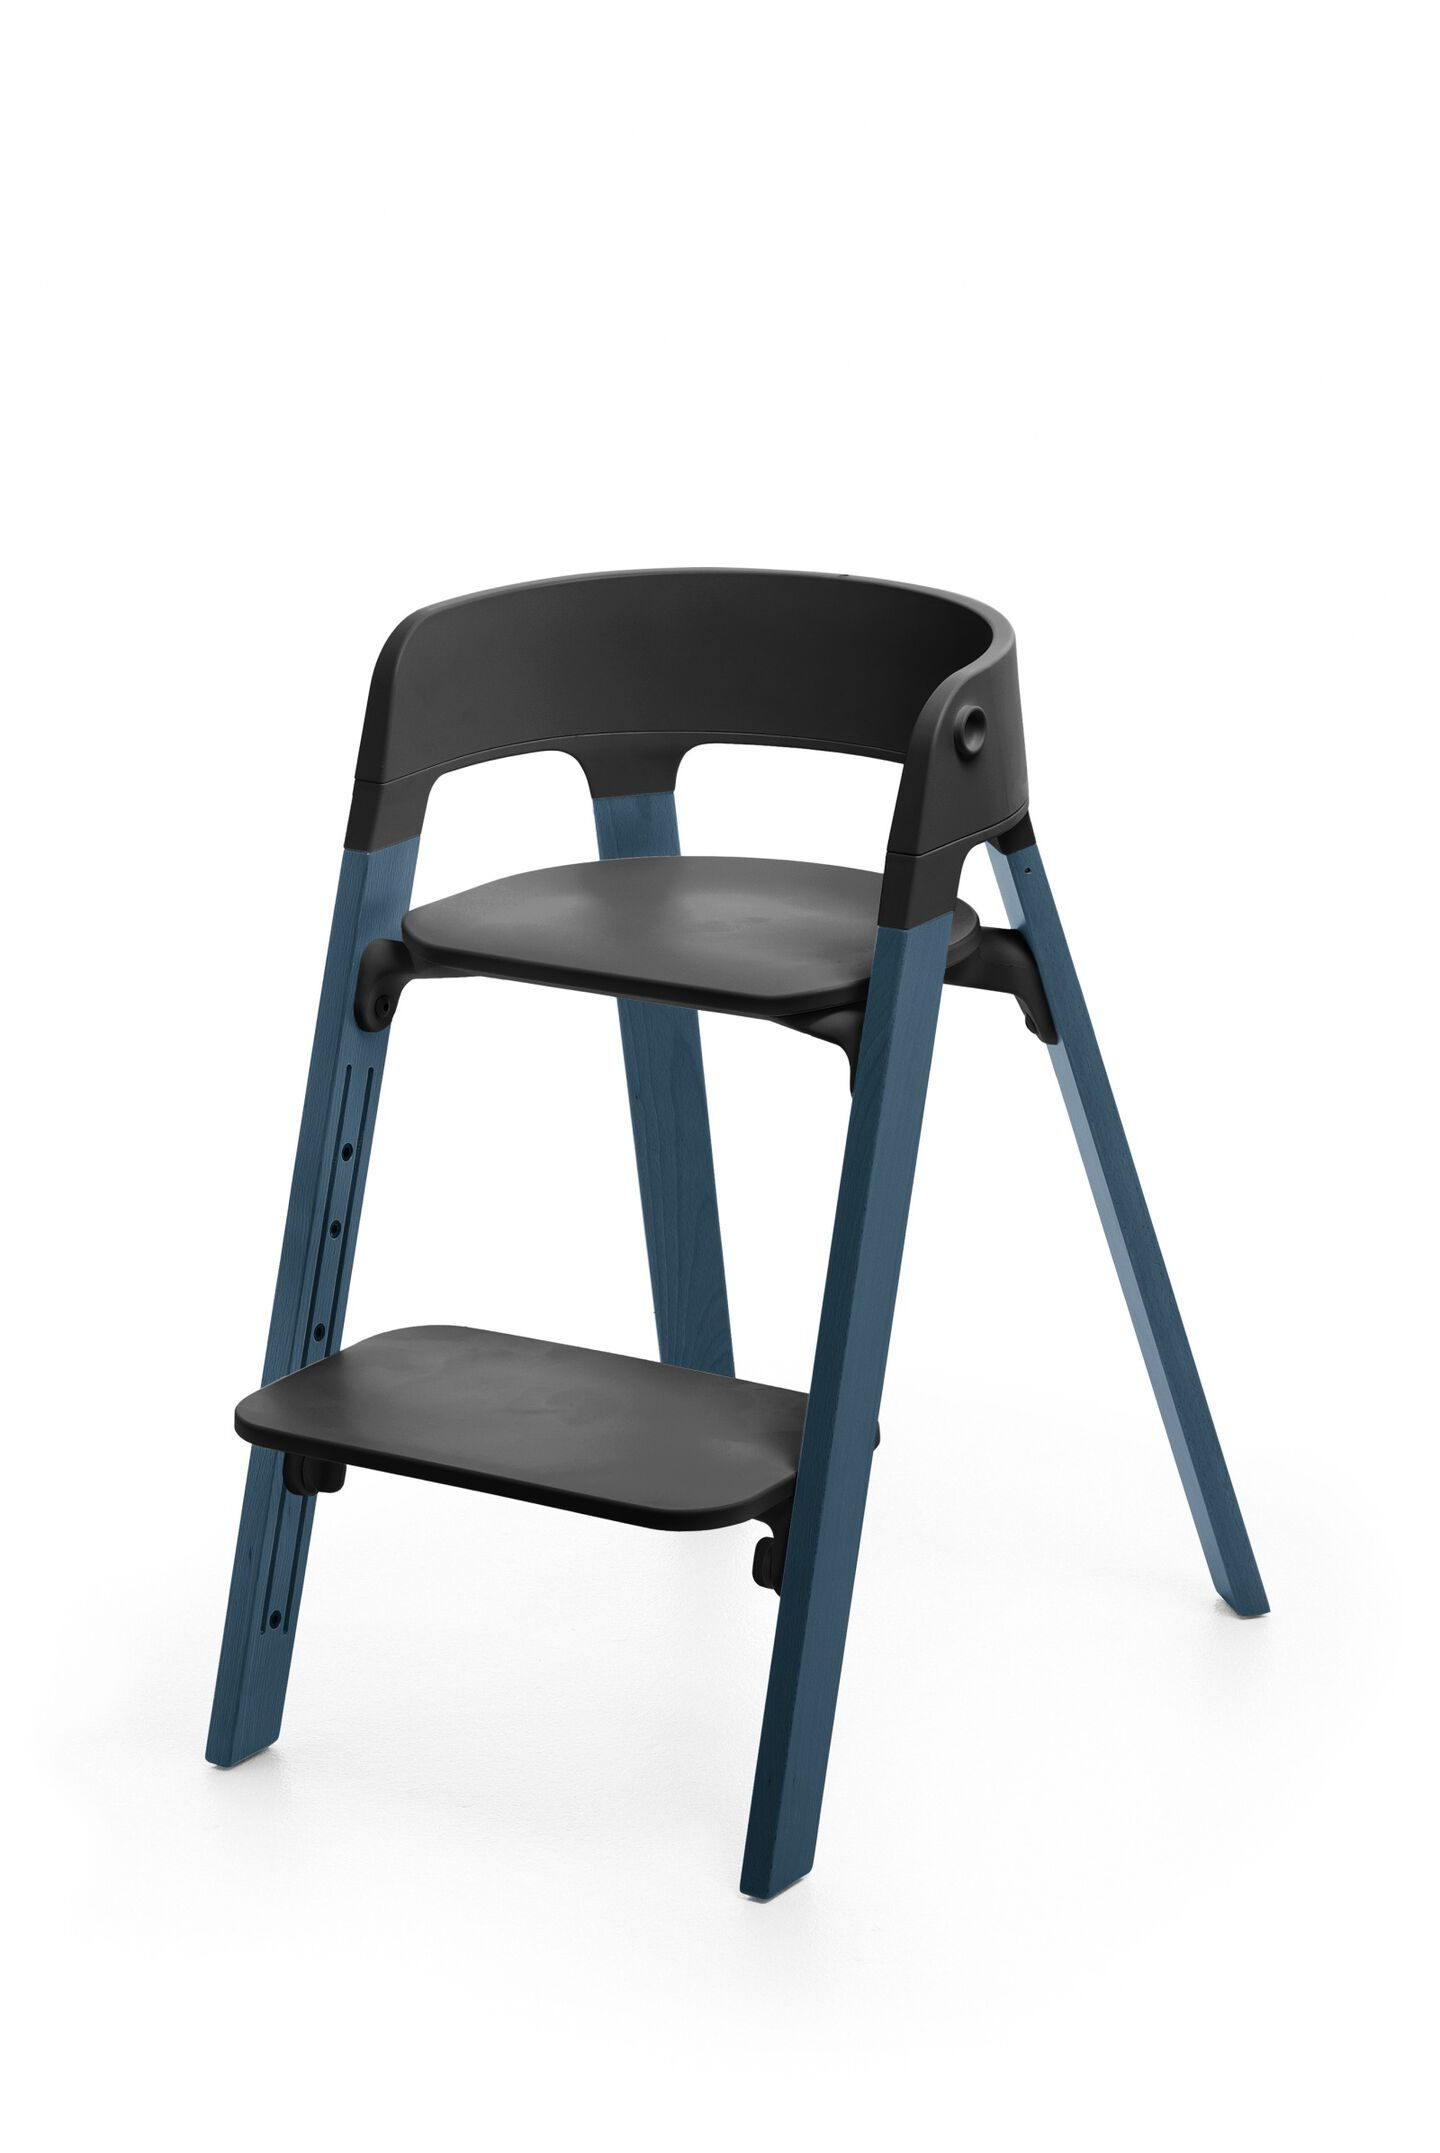 Stokke® Steps™ Chair, Beech Midnight Blue with Black Seat. Foortrest low.